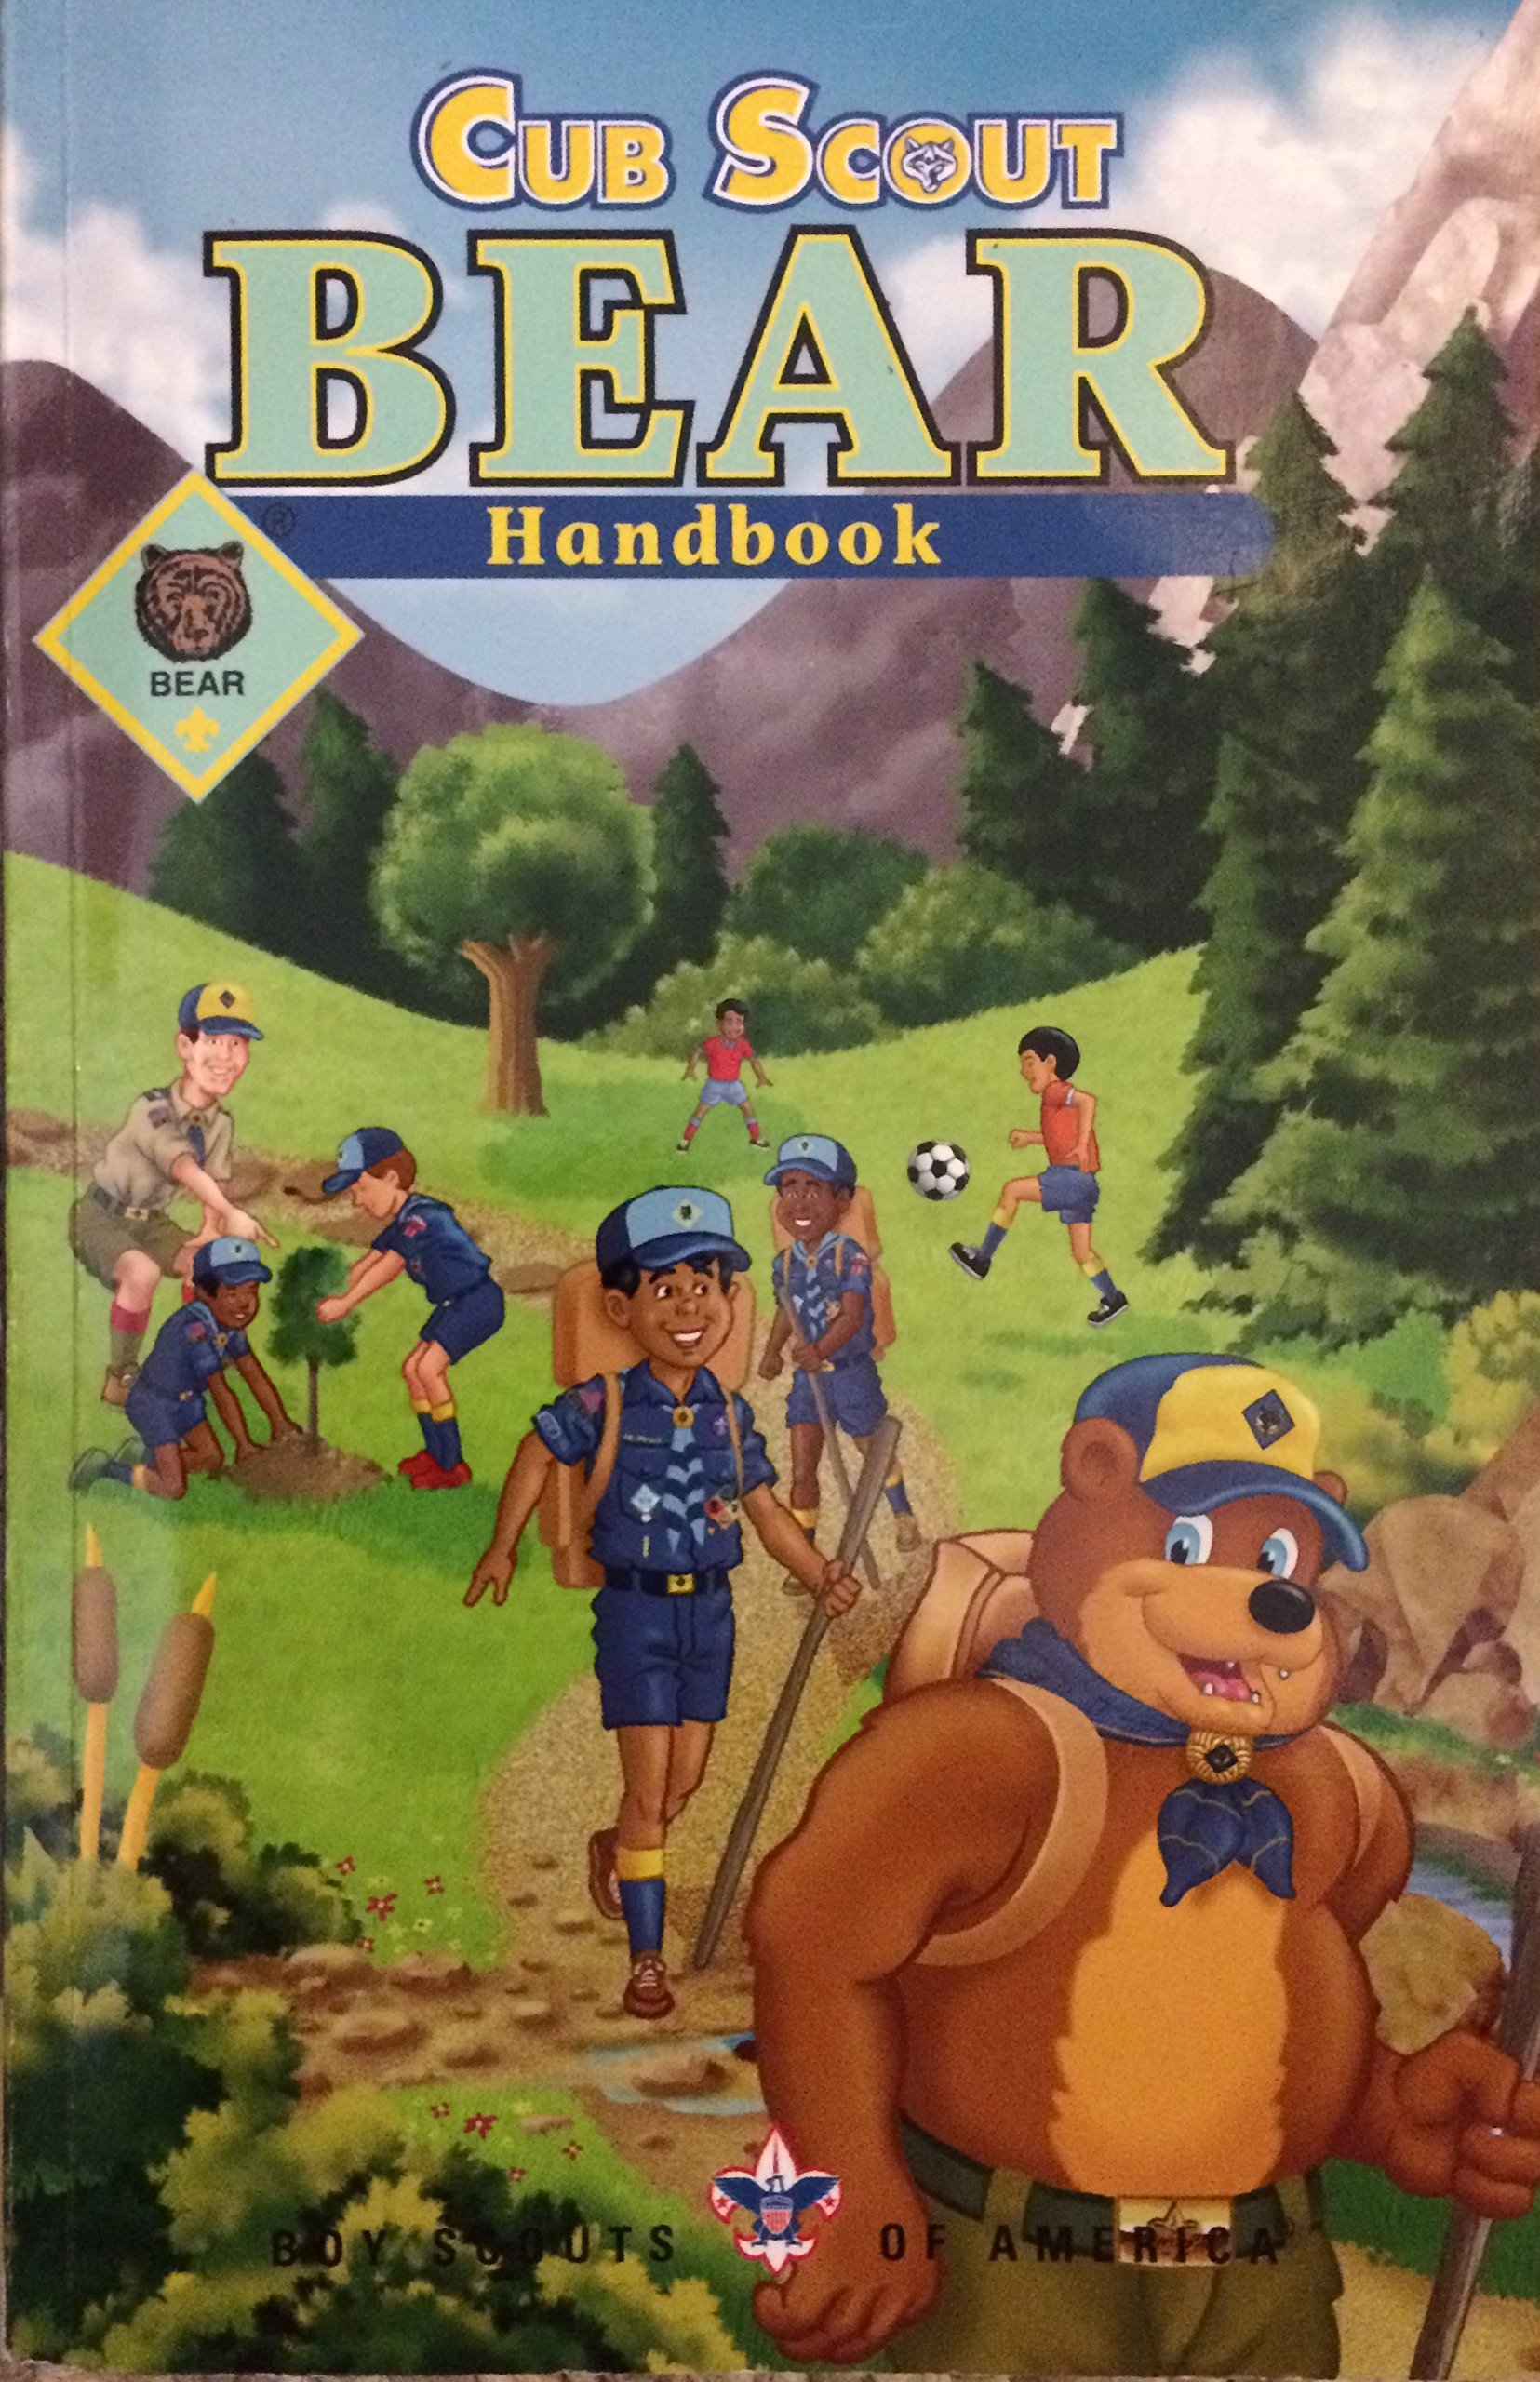 By Boy Scouts of America Cub Scout Bear Handbook by Boy Scouts of America